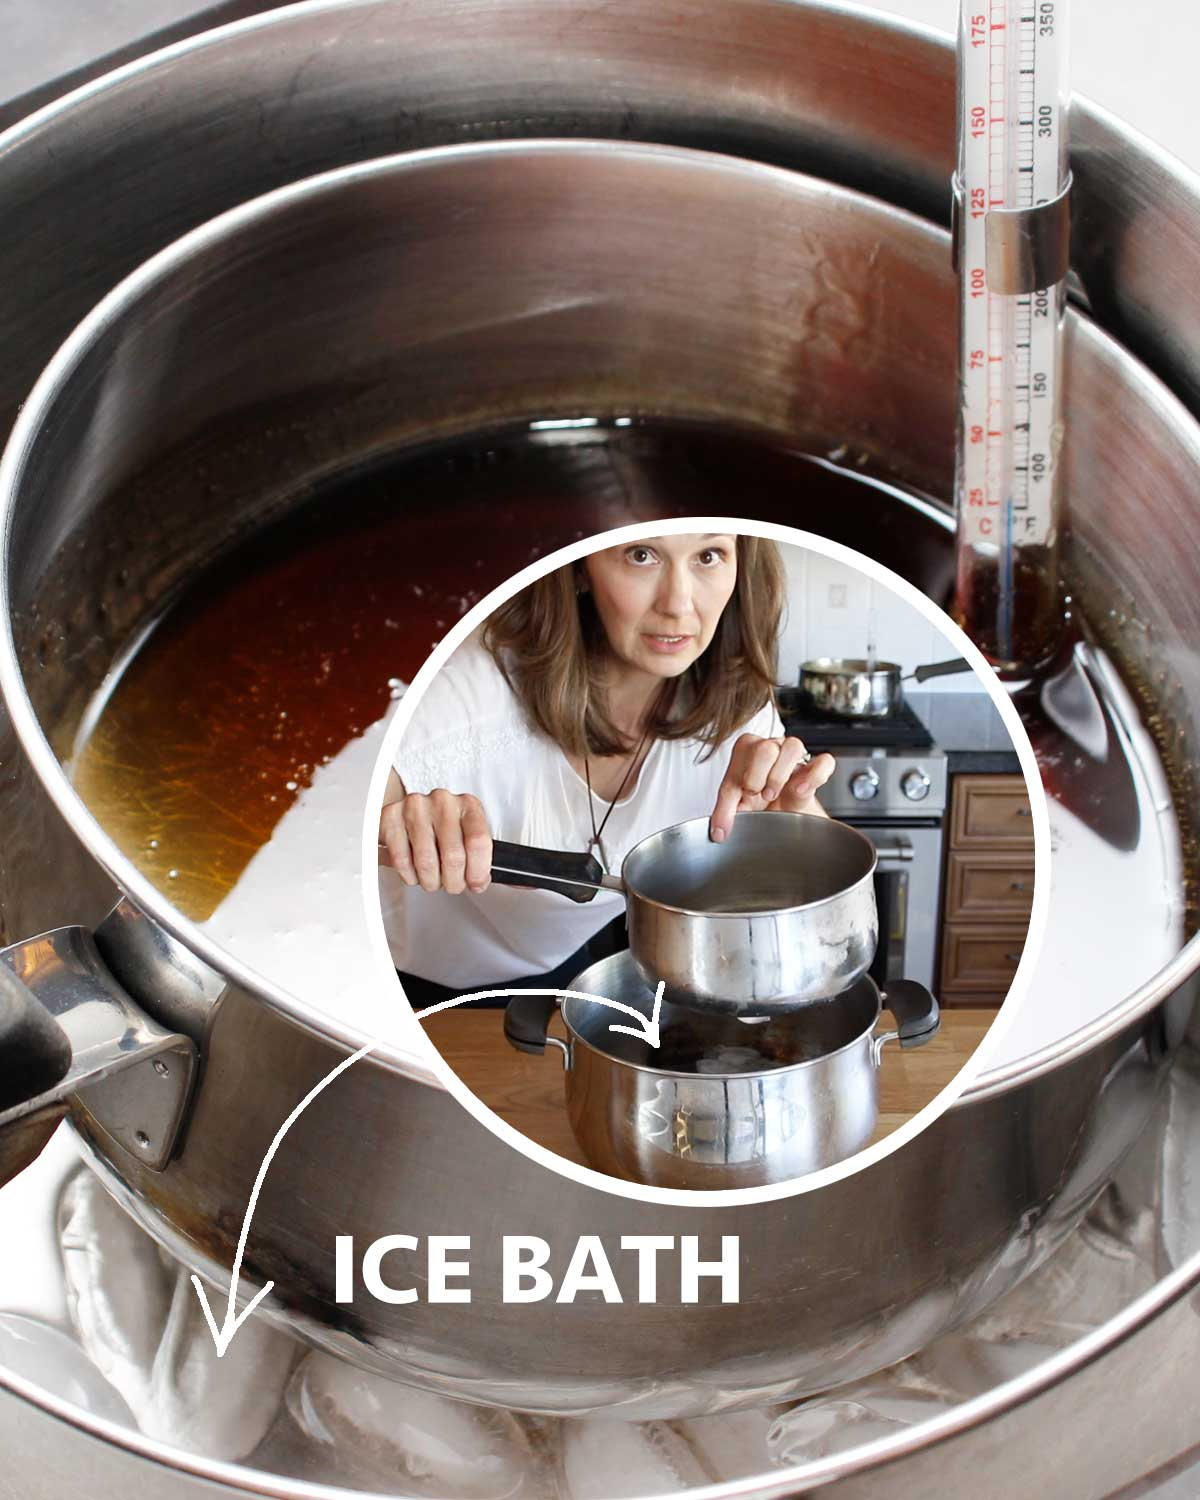 Ice bath: 2 saucepots, one filled with ice cubes to help cool the boiled maple syrup to make hand-stirred maple spread.